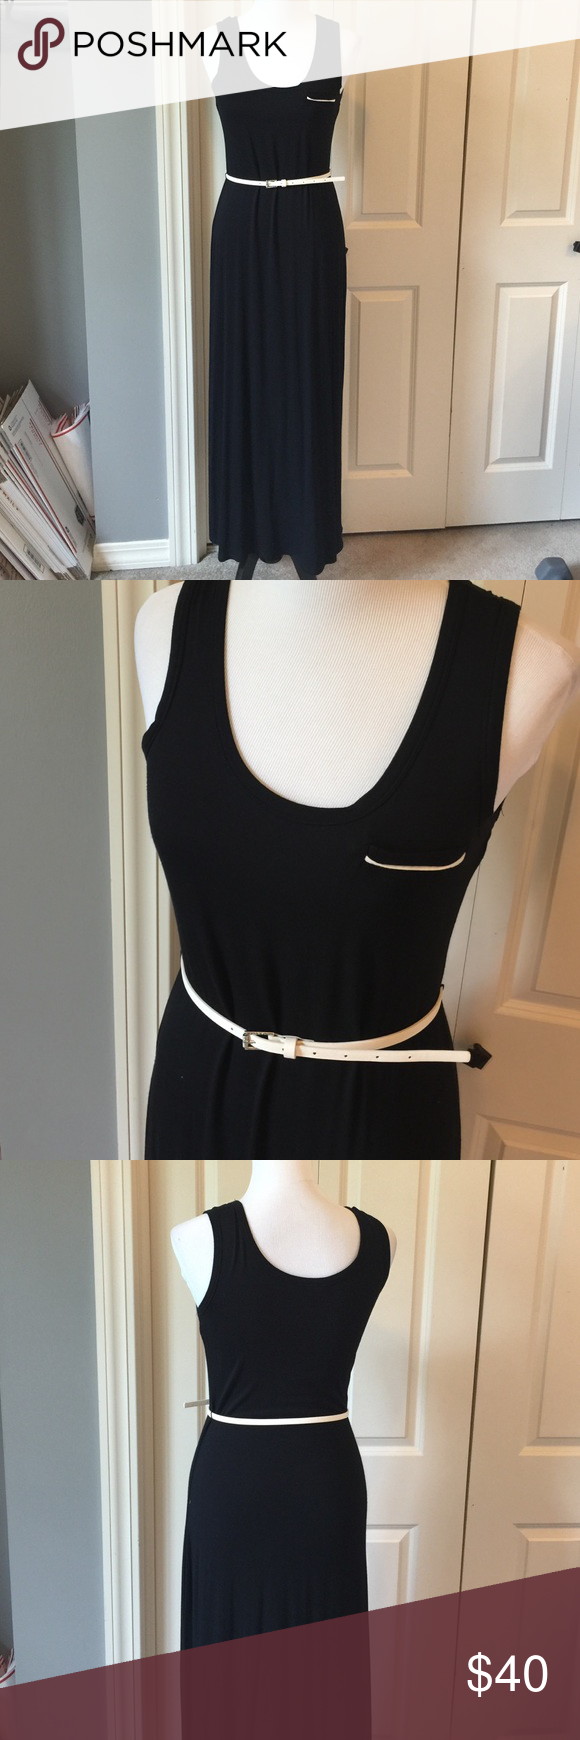 Calvin Klein Black Belted Maxi Dress Worn once. 96% rayon 4% spandex Calvin Klein Dresses Maxi